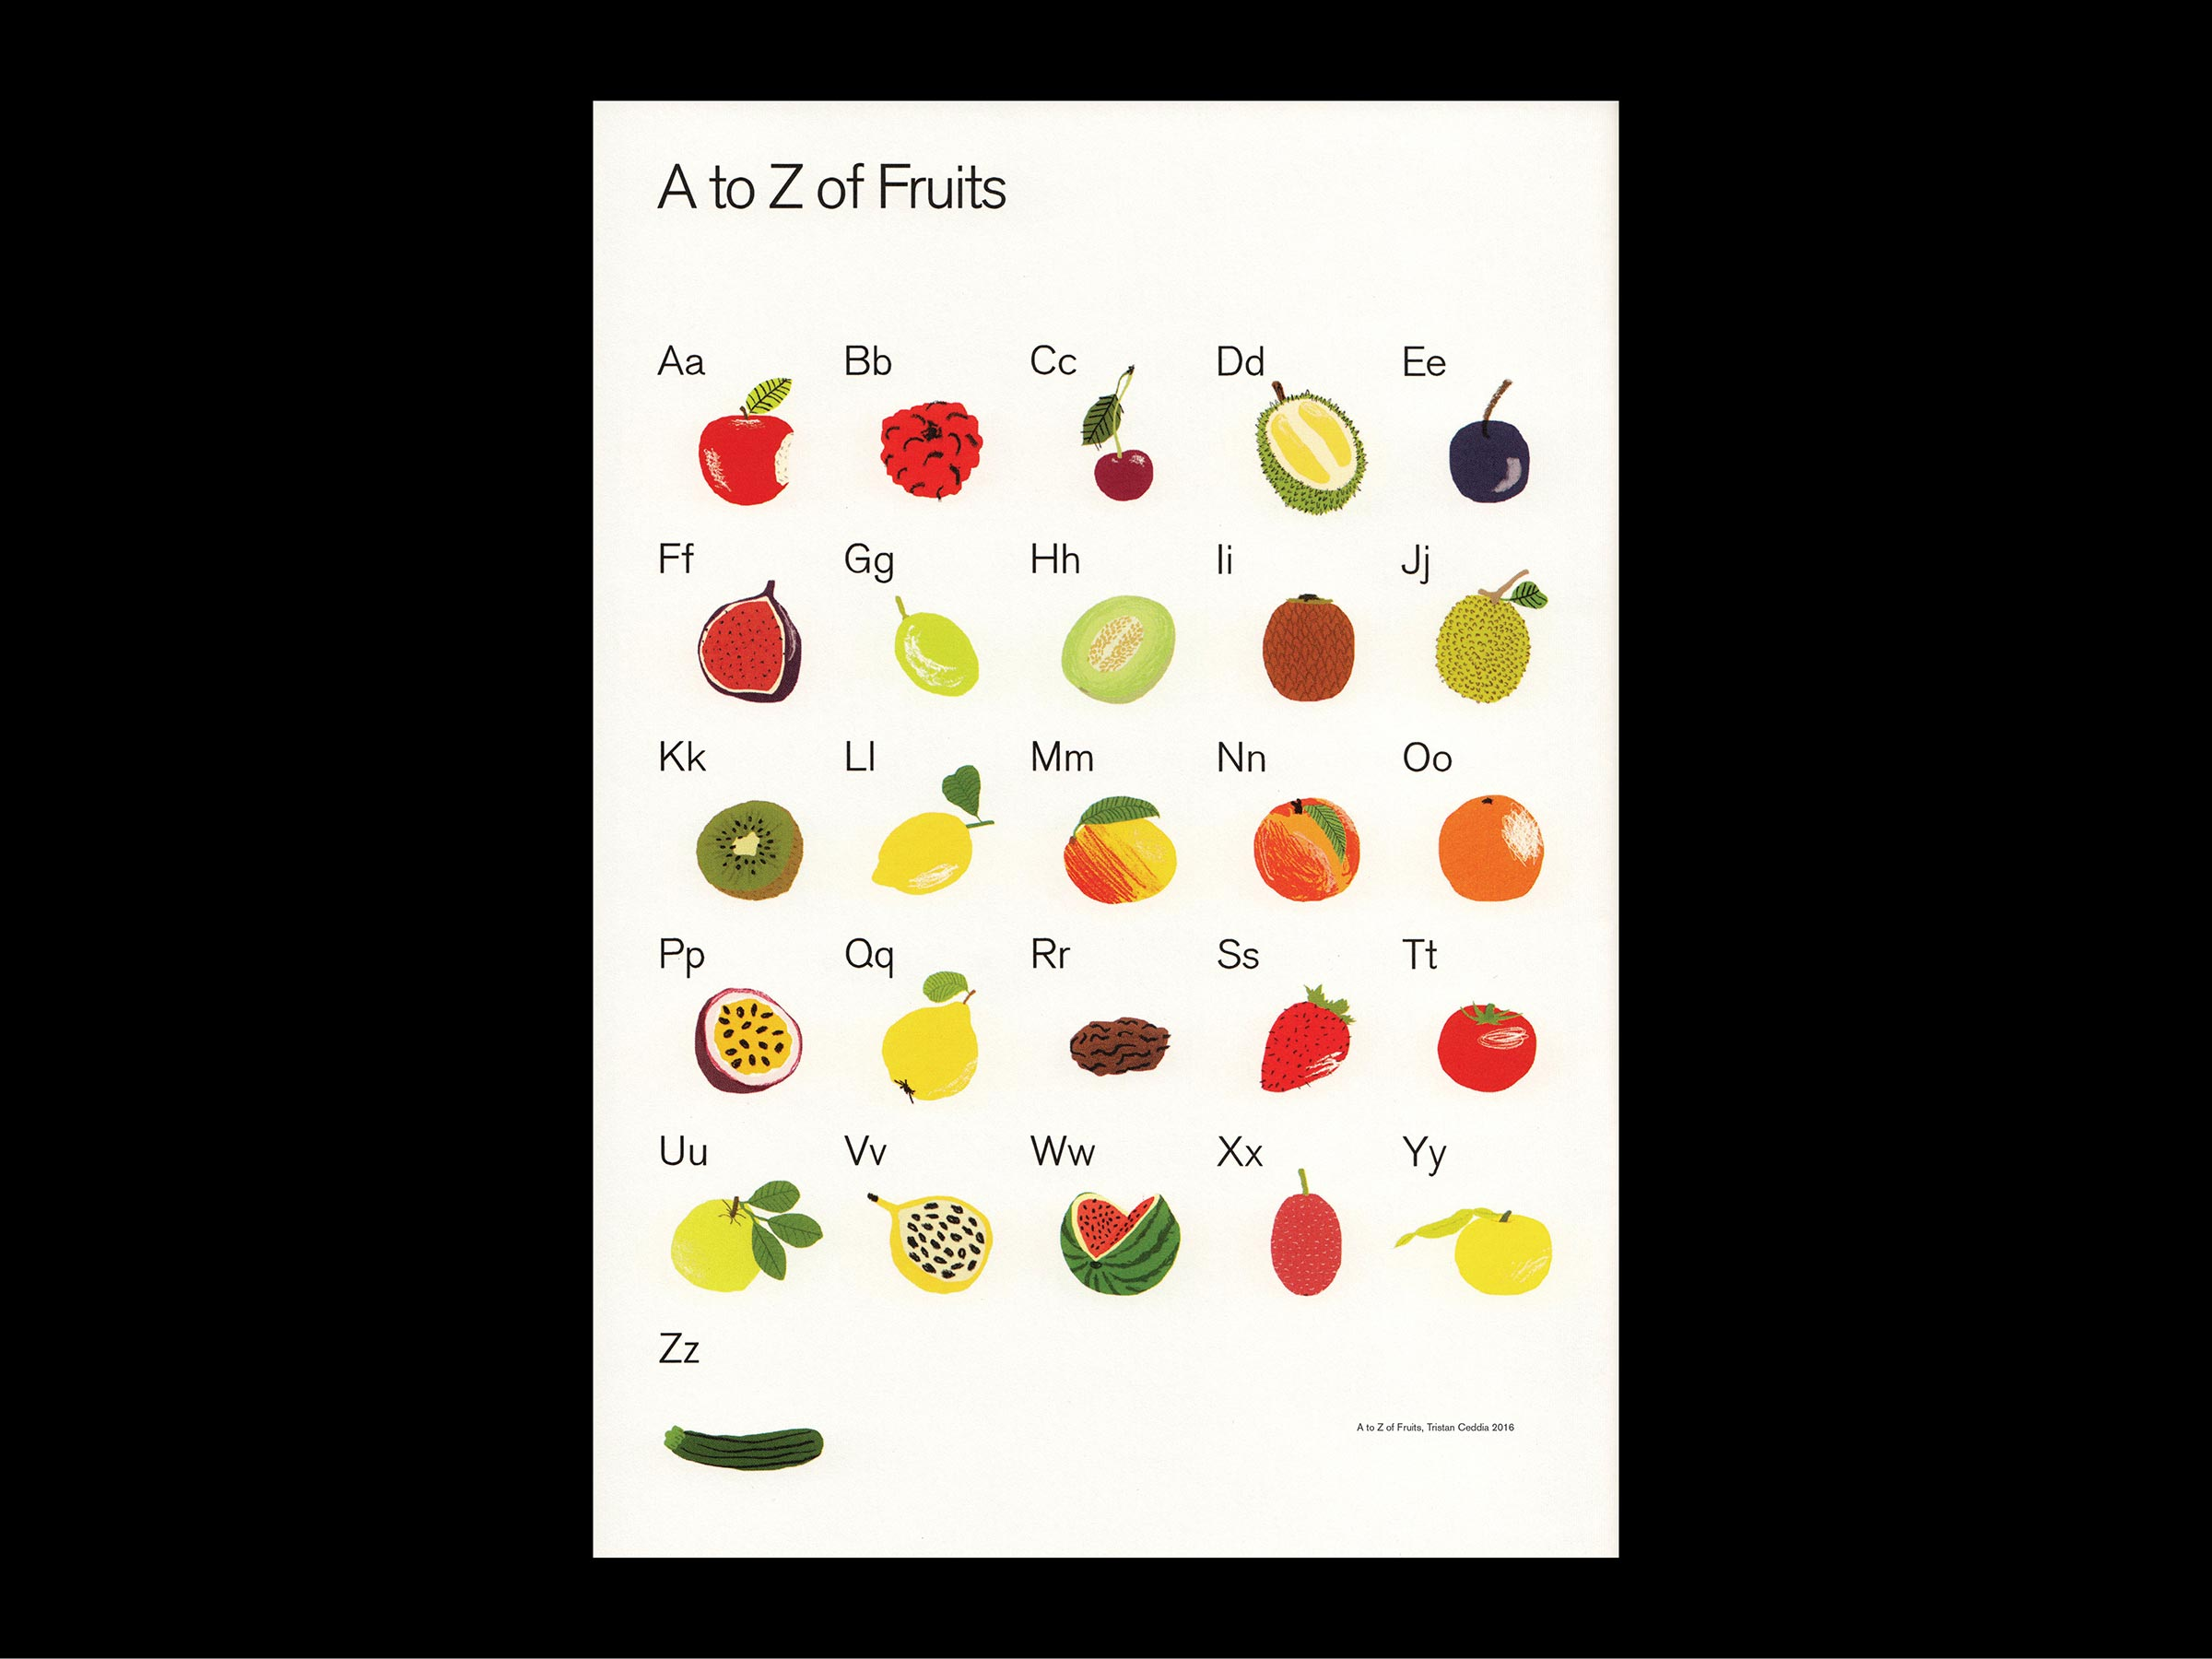 A to Z of Fruits